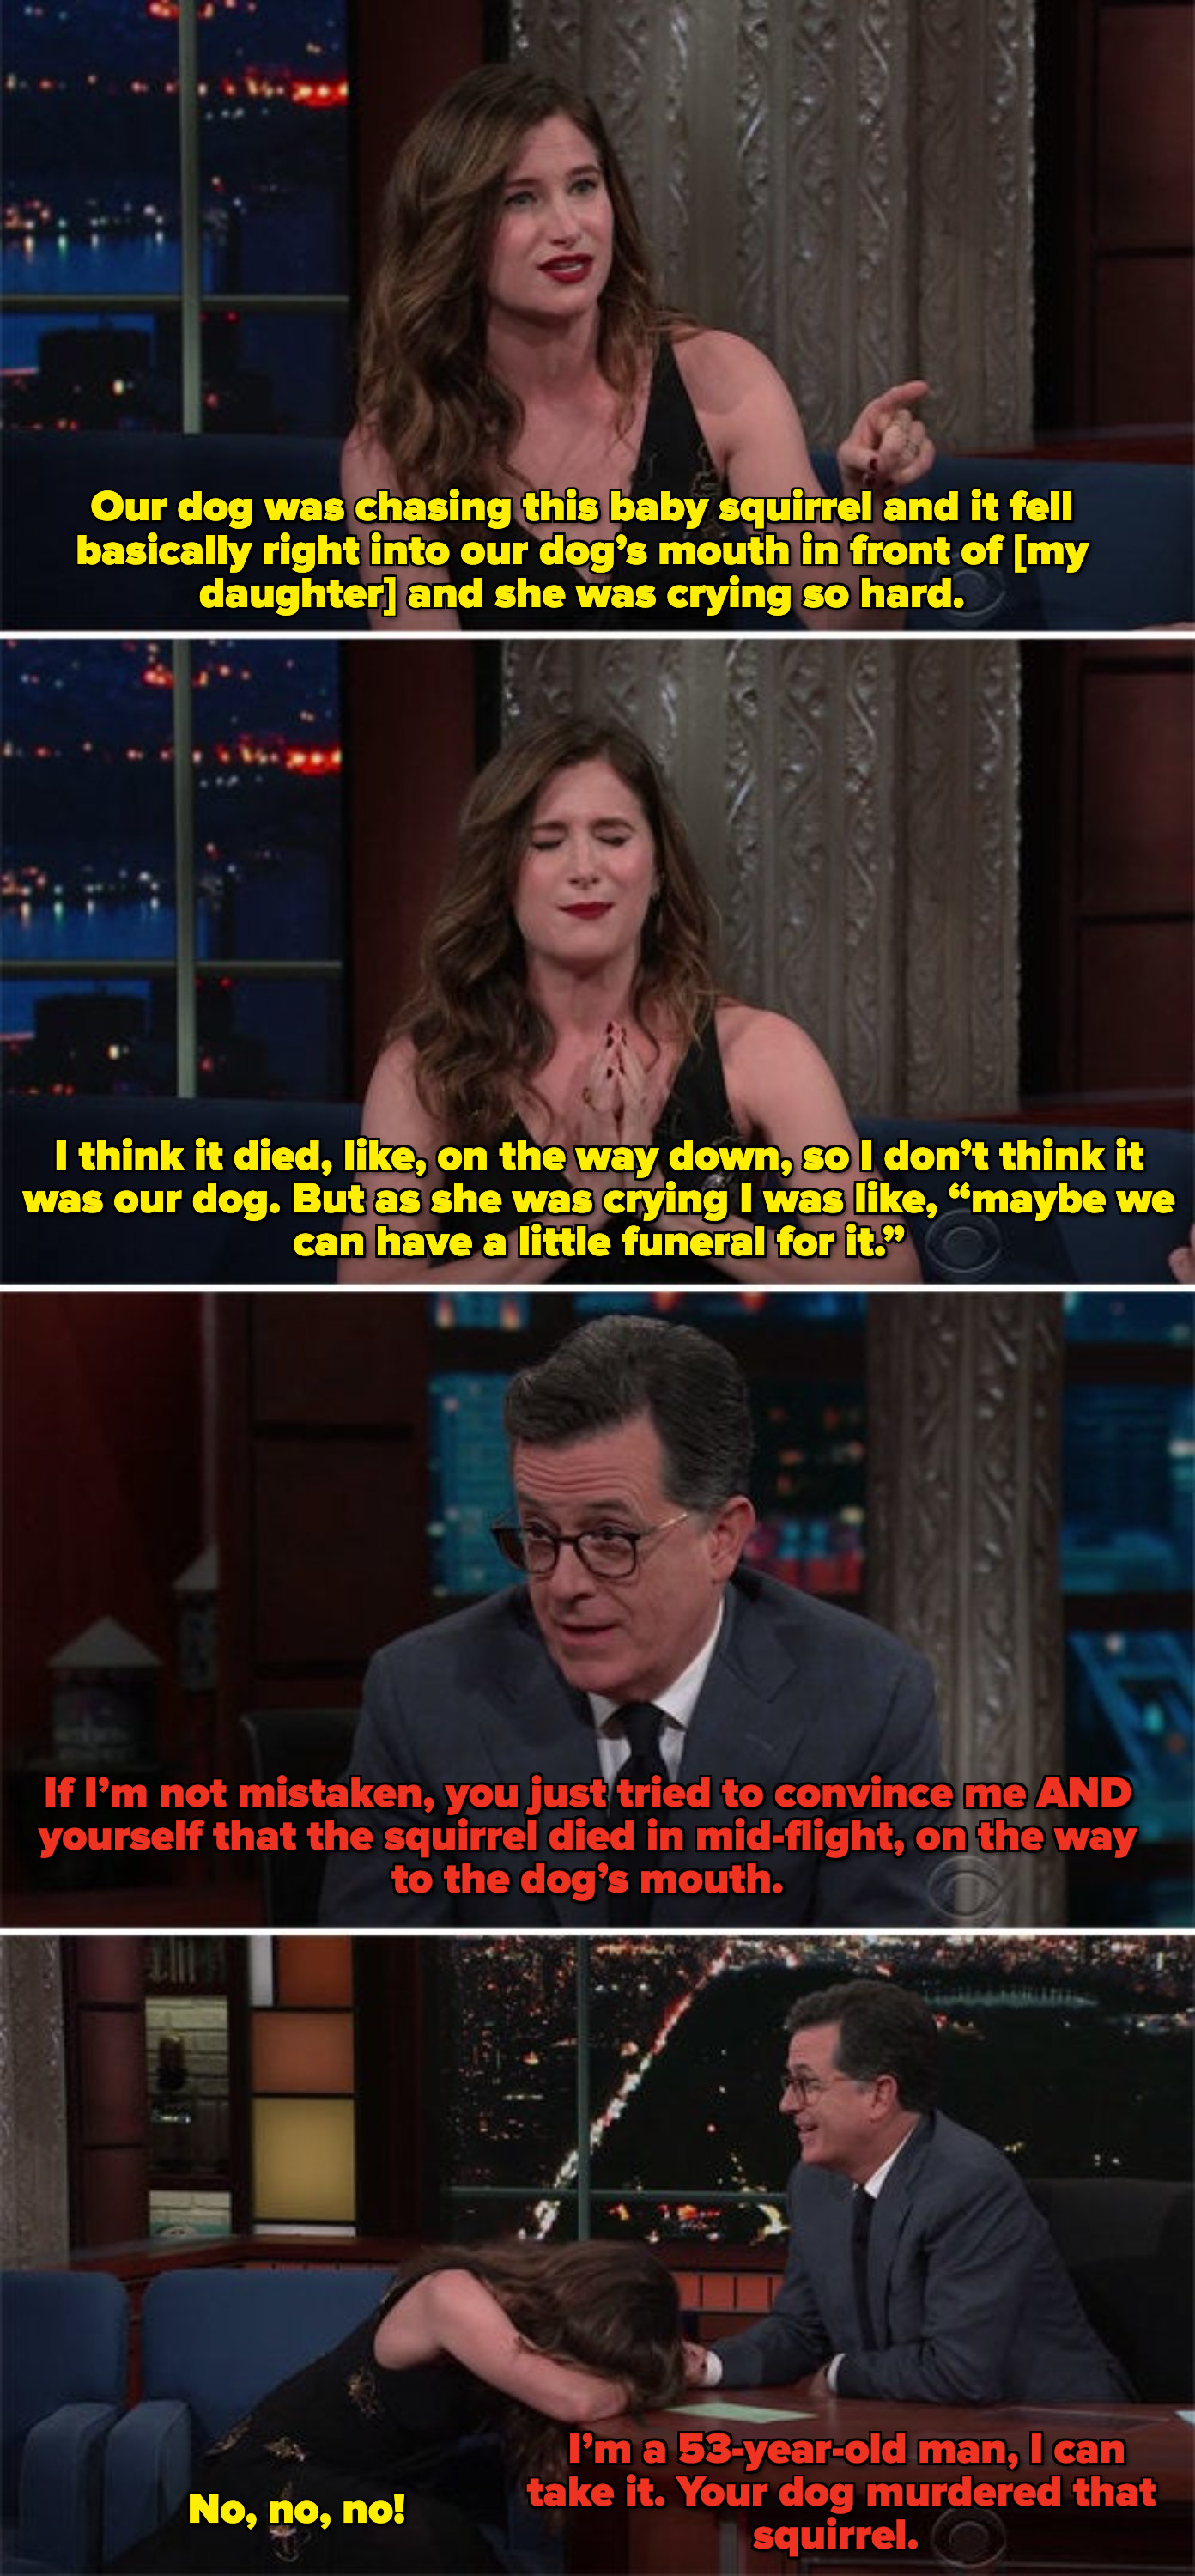 Kathryn telling Colbert that a bird fell in her dog's mouth in front of her daughter and died mid-air, and Colbert telling her that she's trying to convince both of them when her dog actually killed the bird